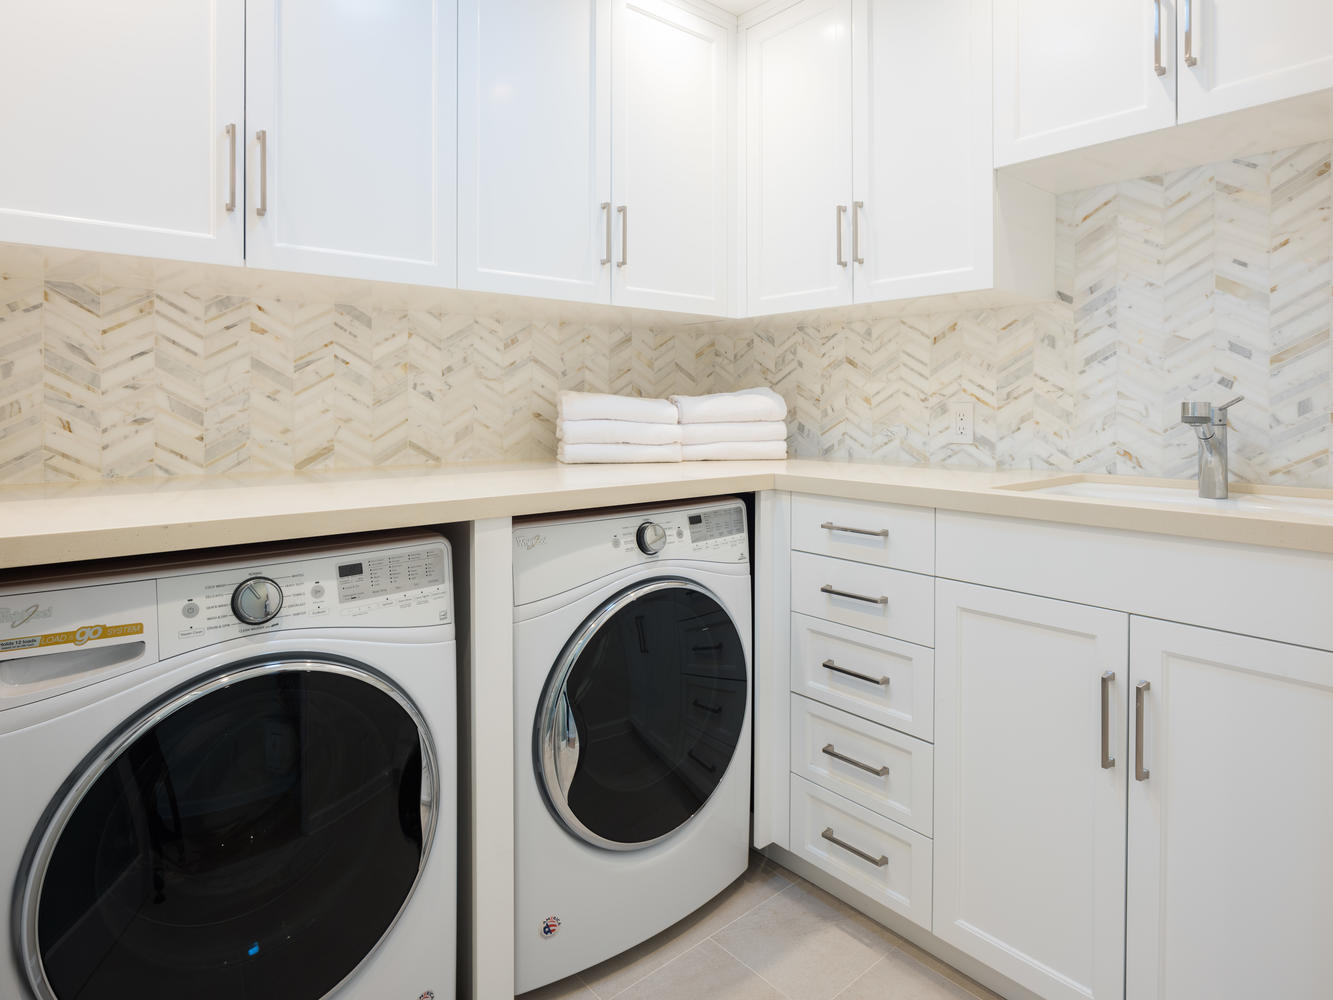 571 Radcliffe Ave Pacific-large-029-14-Laundry Room-1334x1000-72dpi.jpg